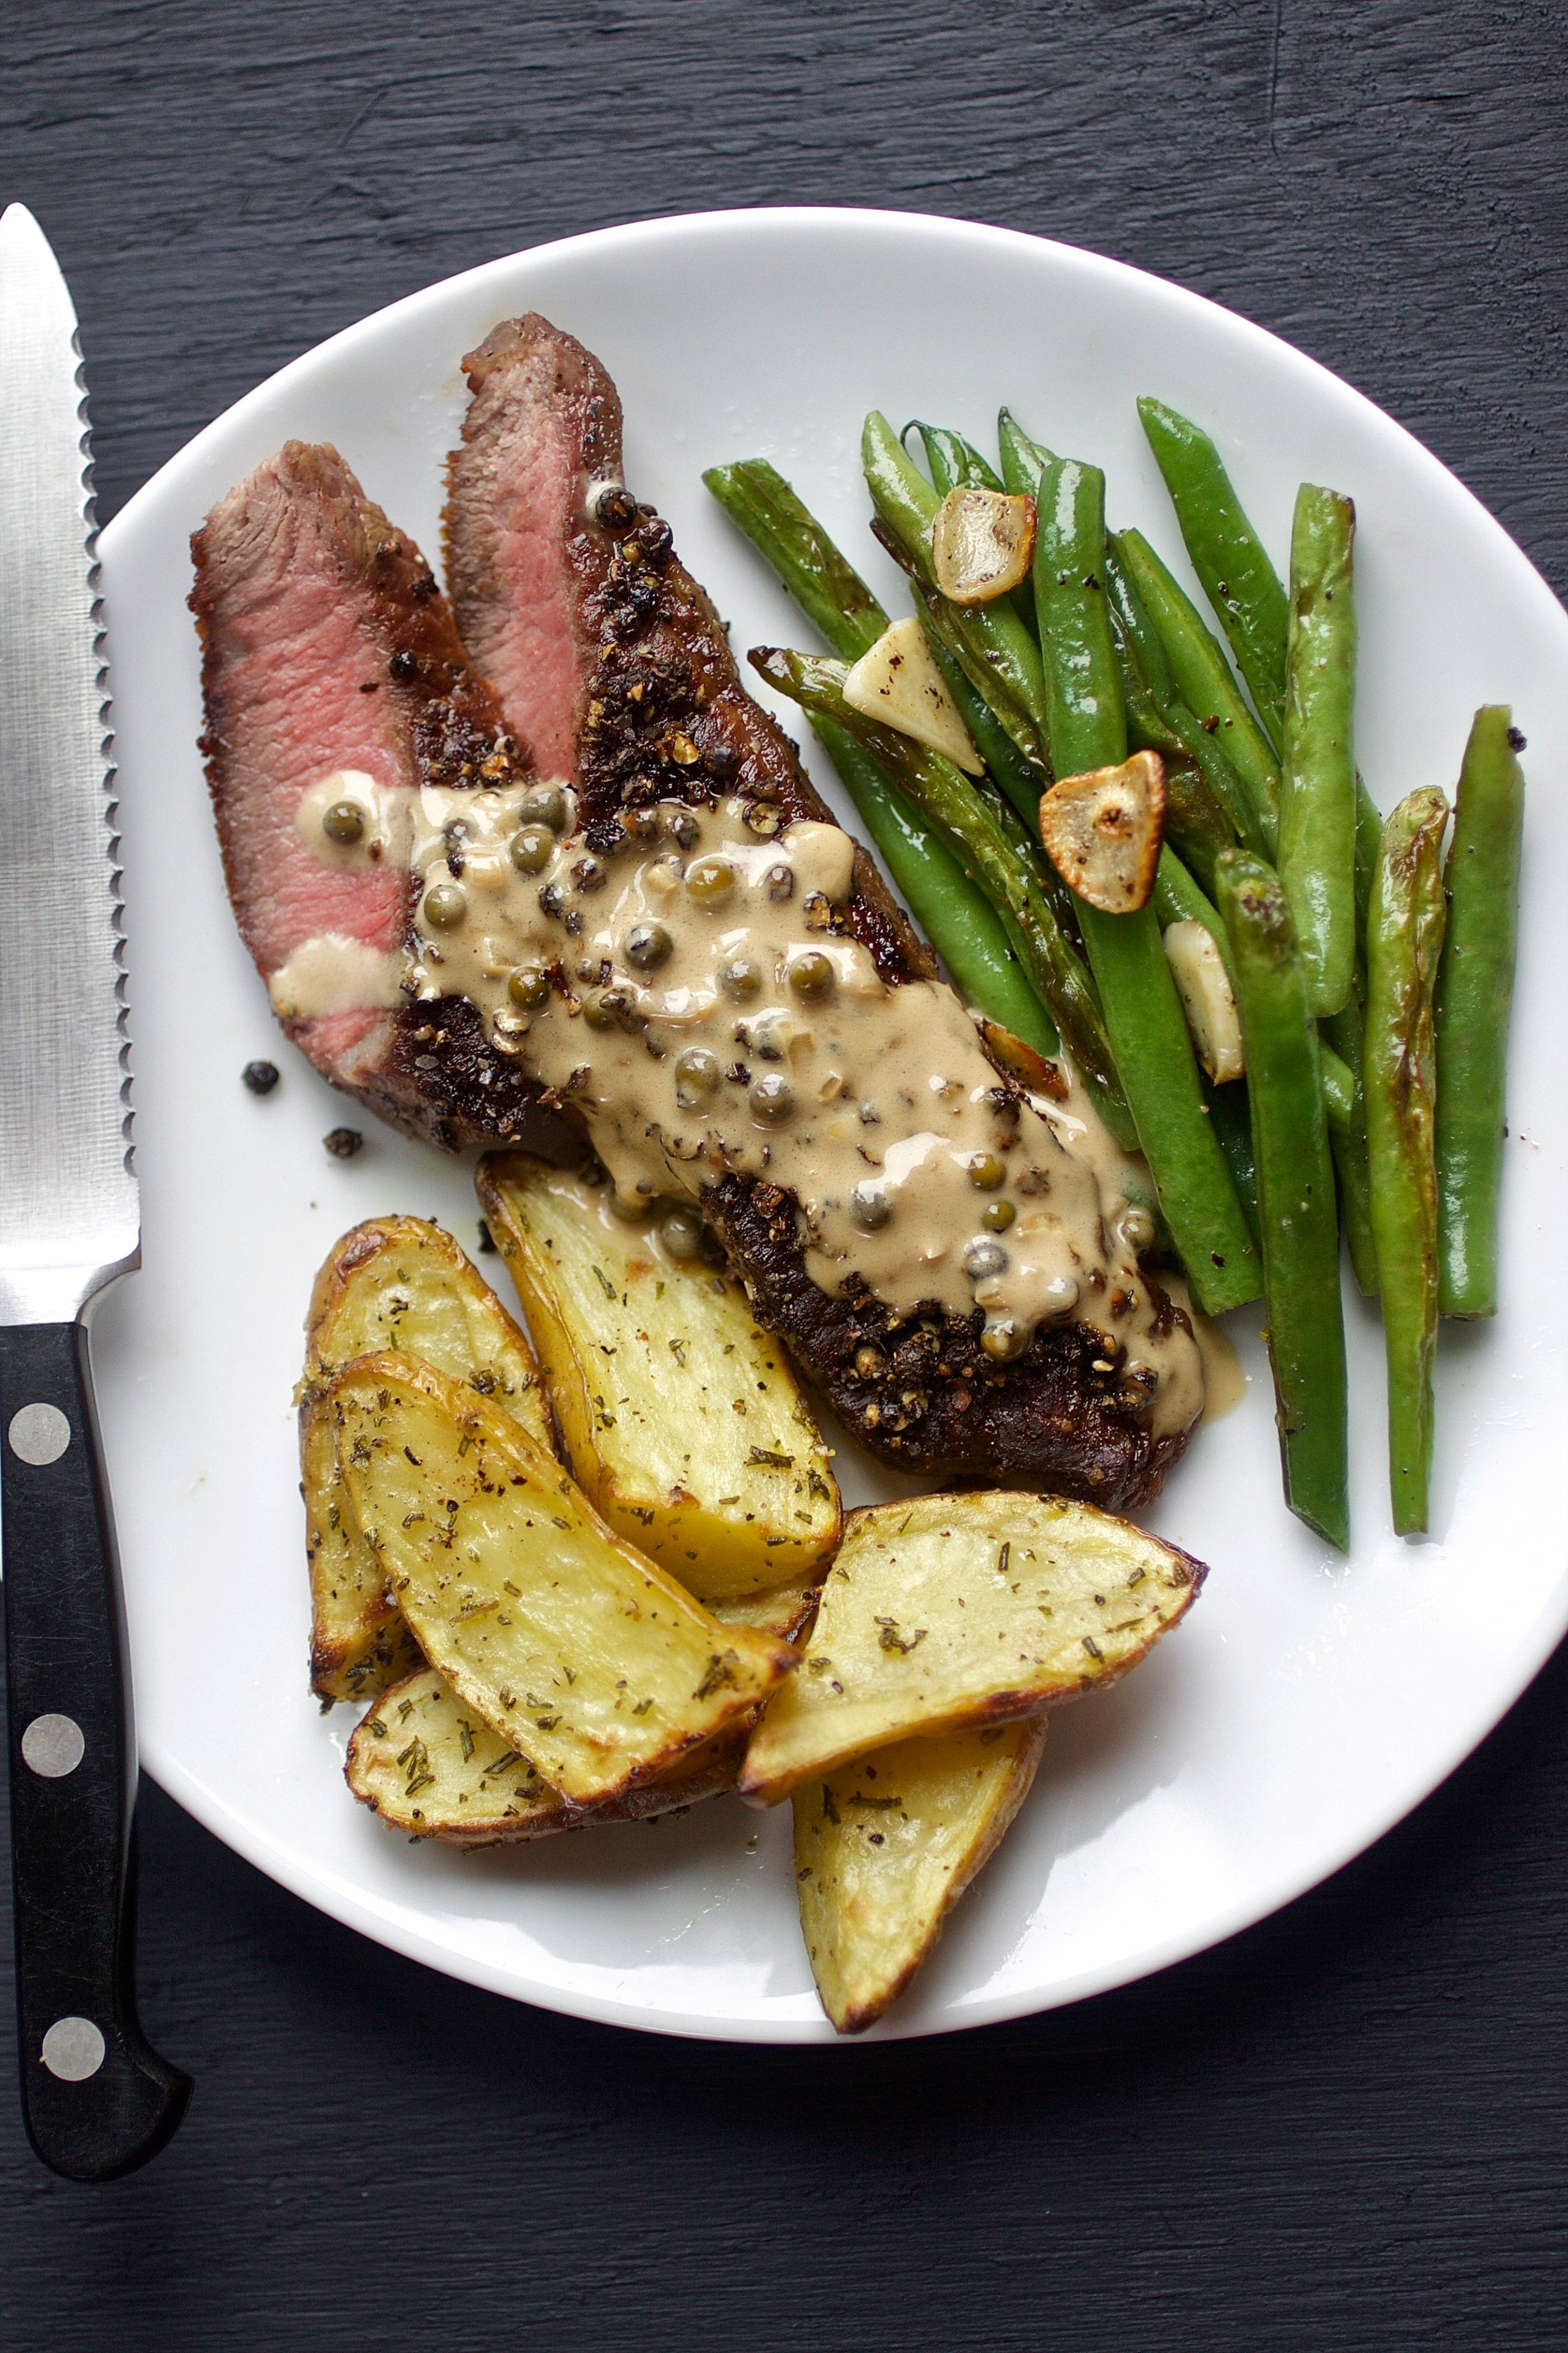 Belgische Küche Rezepte Steak Au Poivre By Men 39s Health Upscale Meals